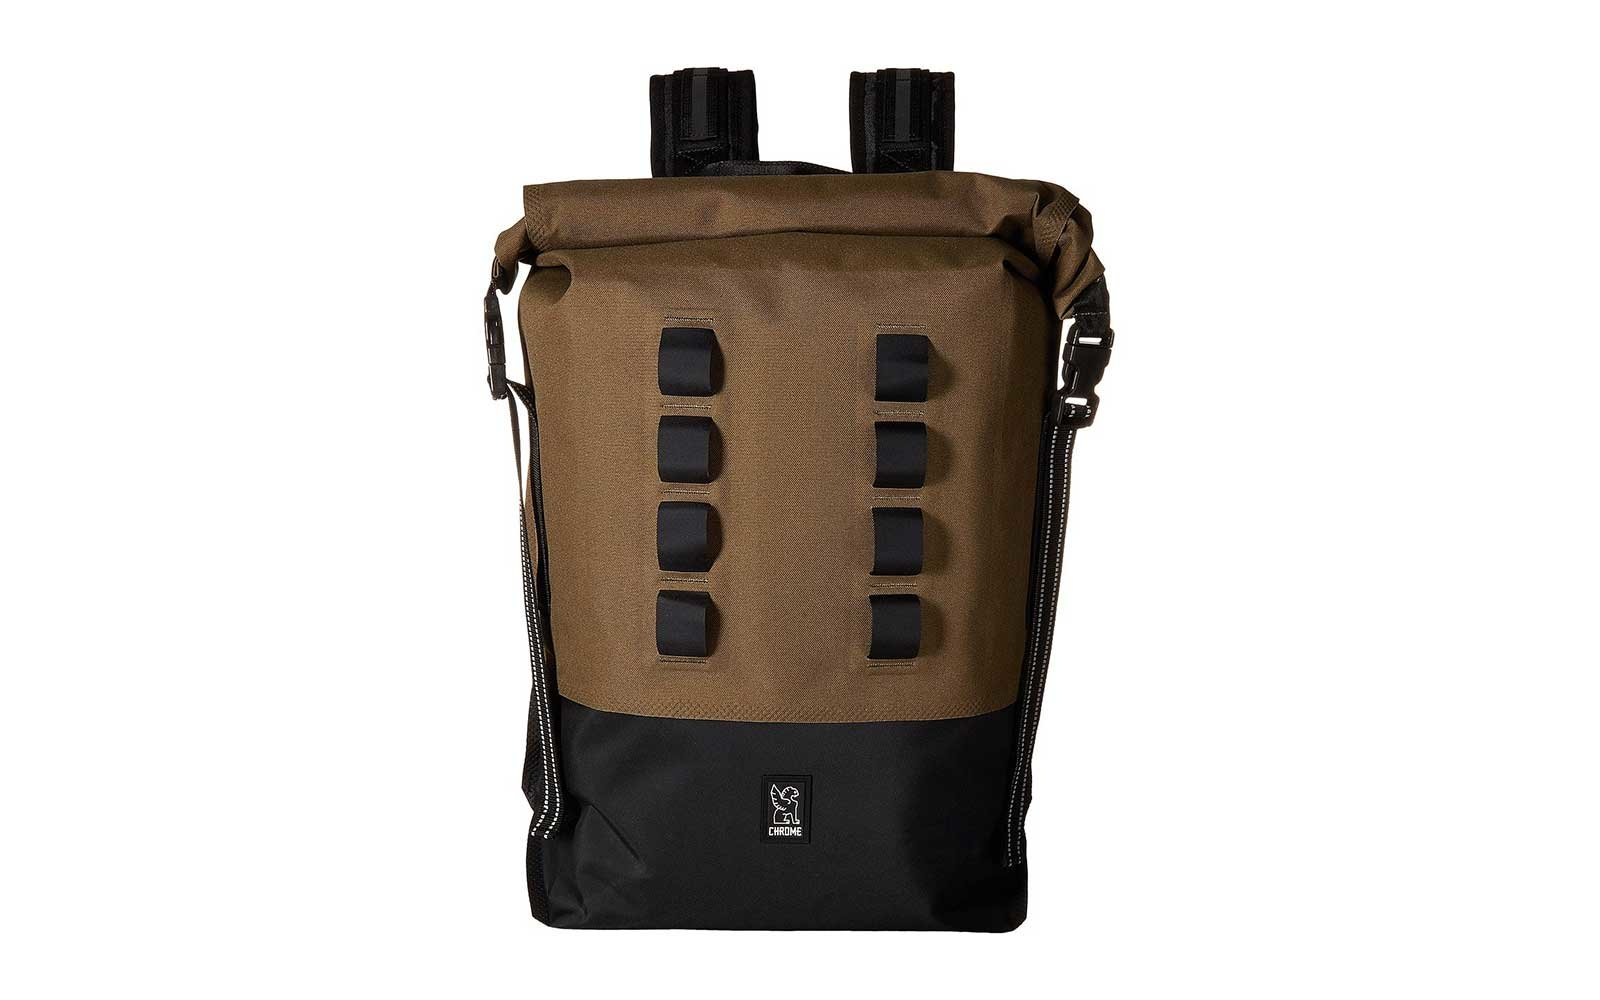 b694156489 Chrome Urban Ex Rolltop 28L. Brown rolltop waterproof backpack ...